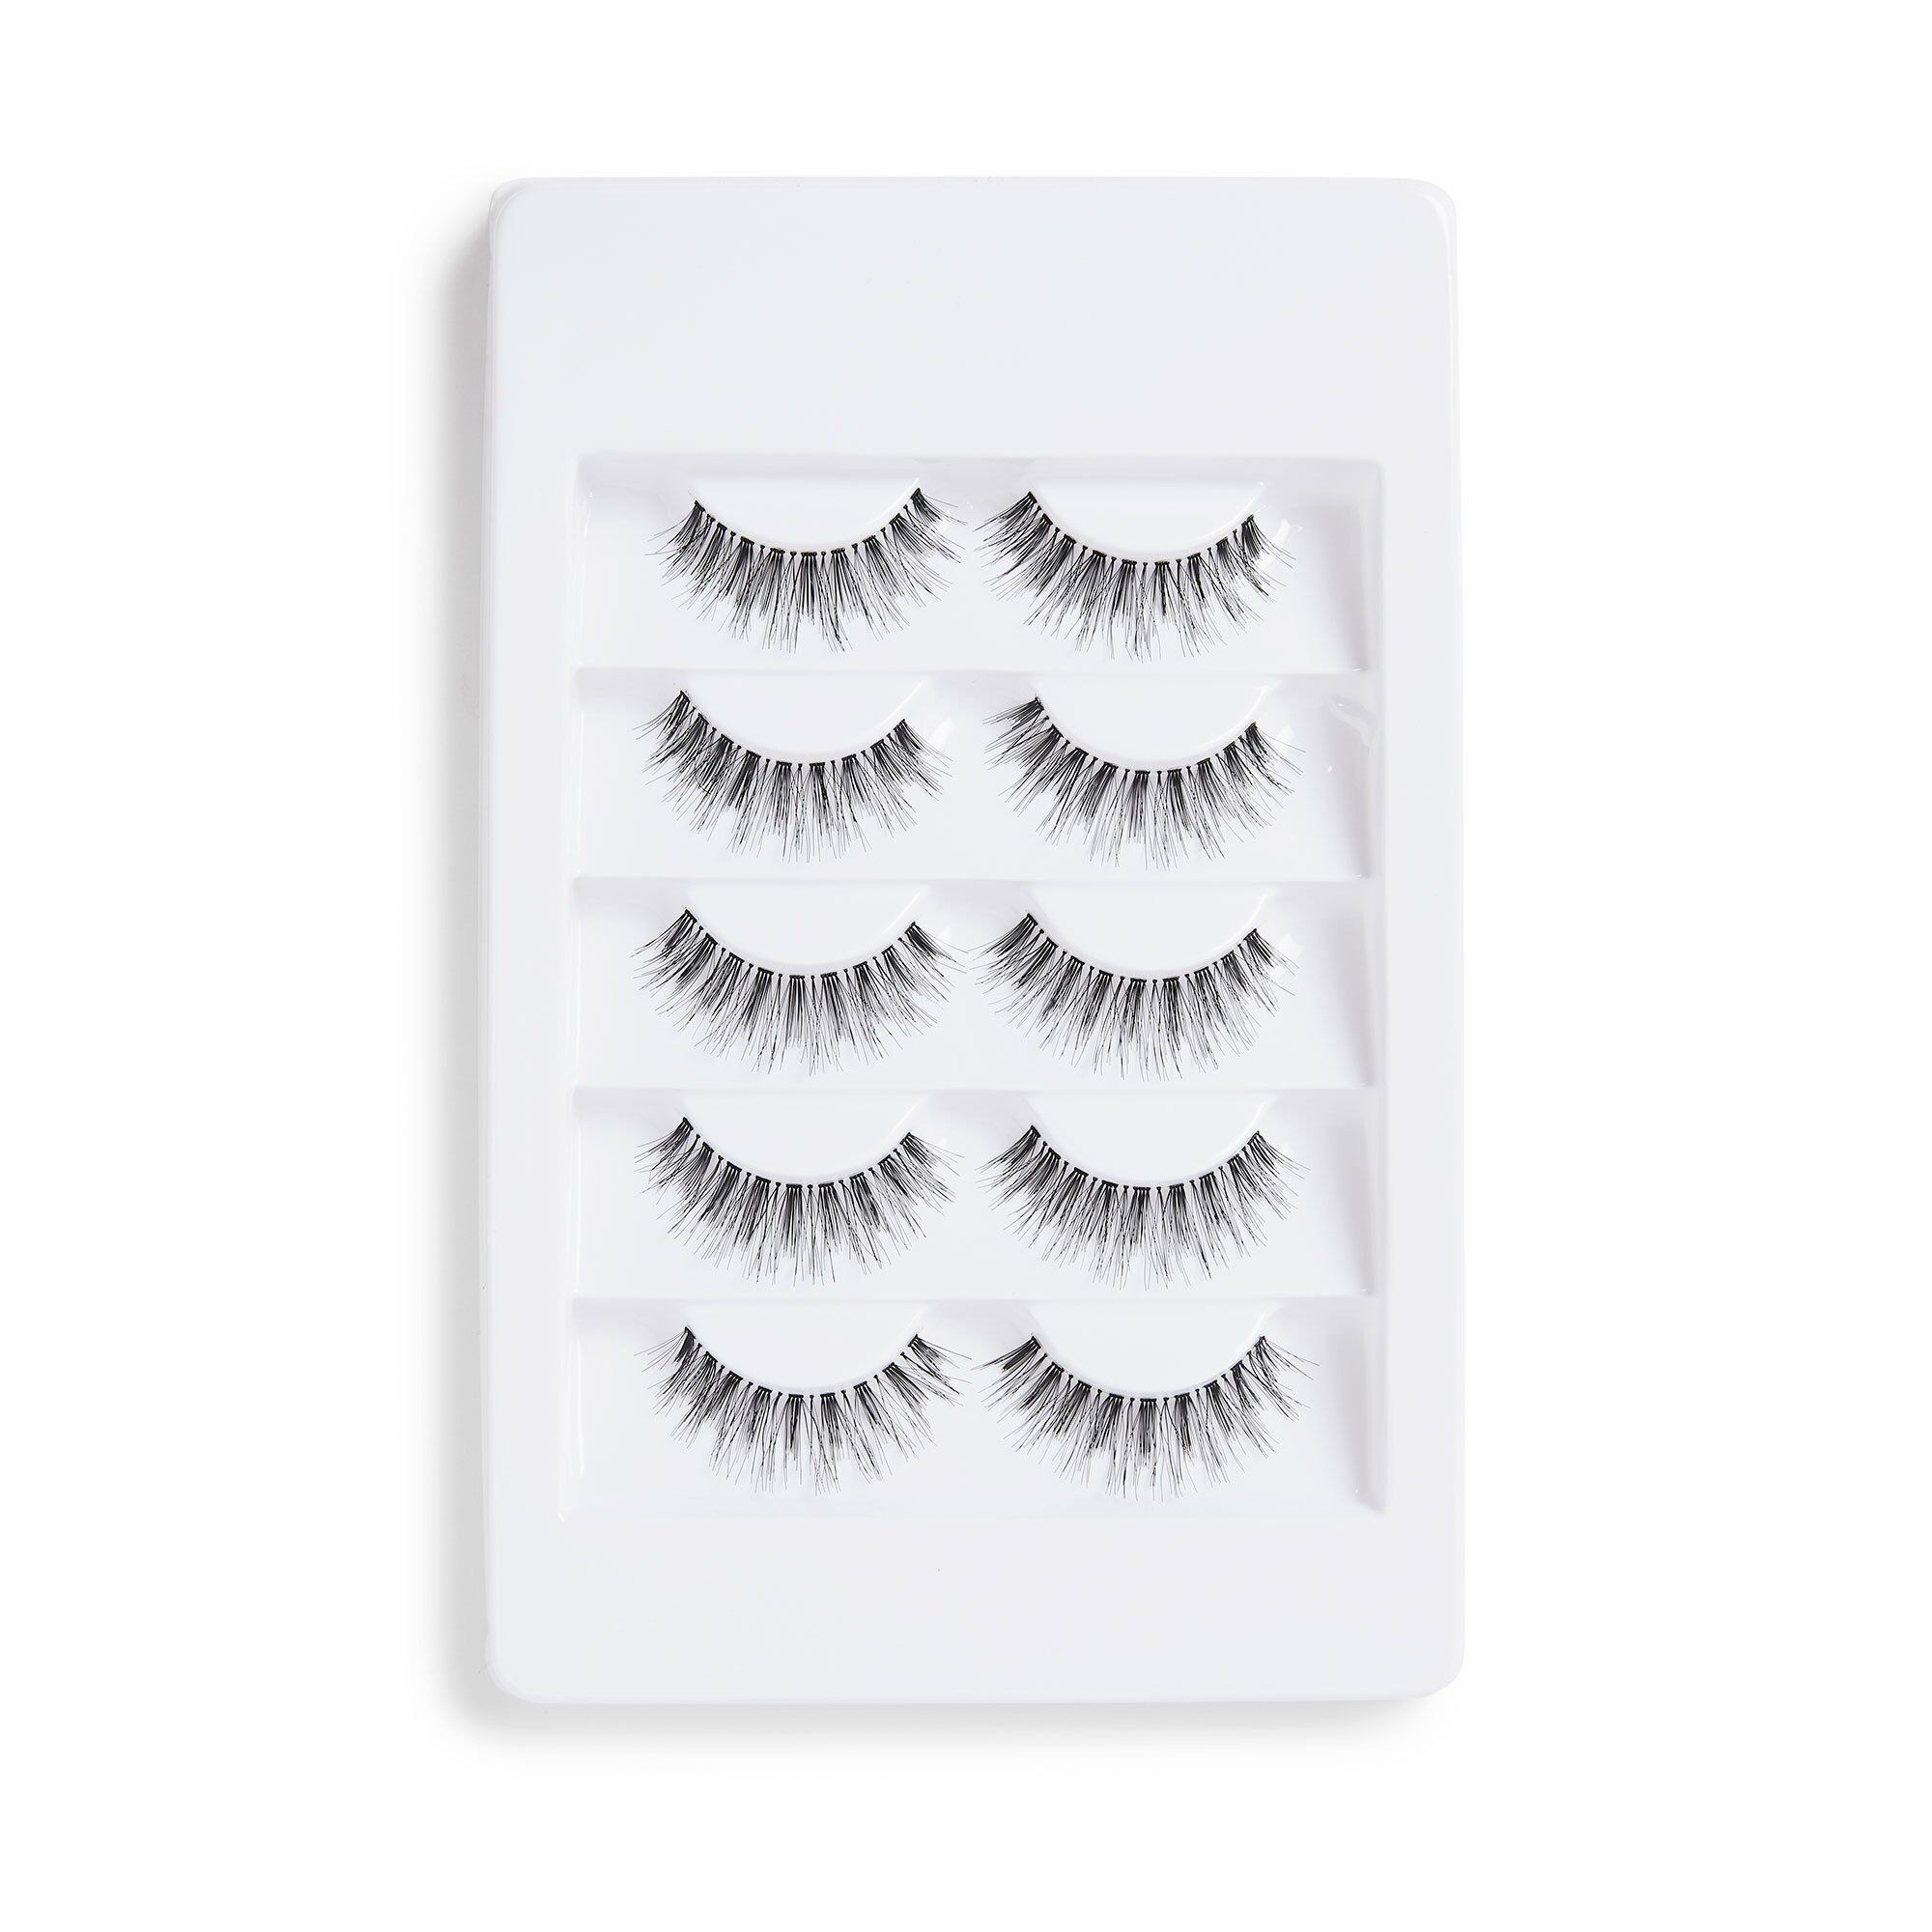 Falsche Wimpern - 5 Pack Feather Wispy Lashes